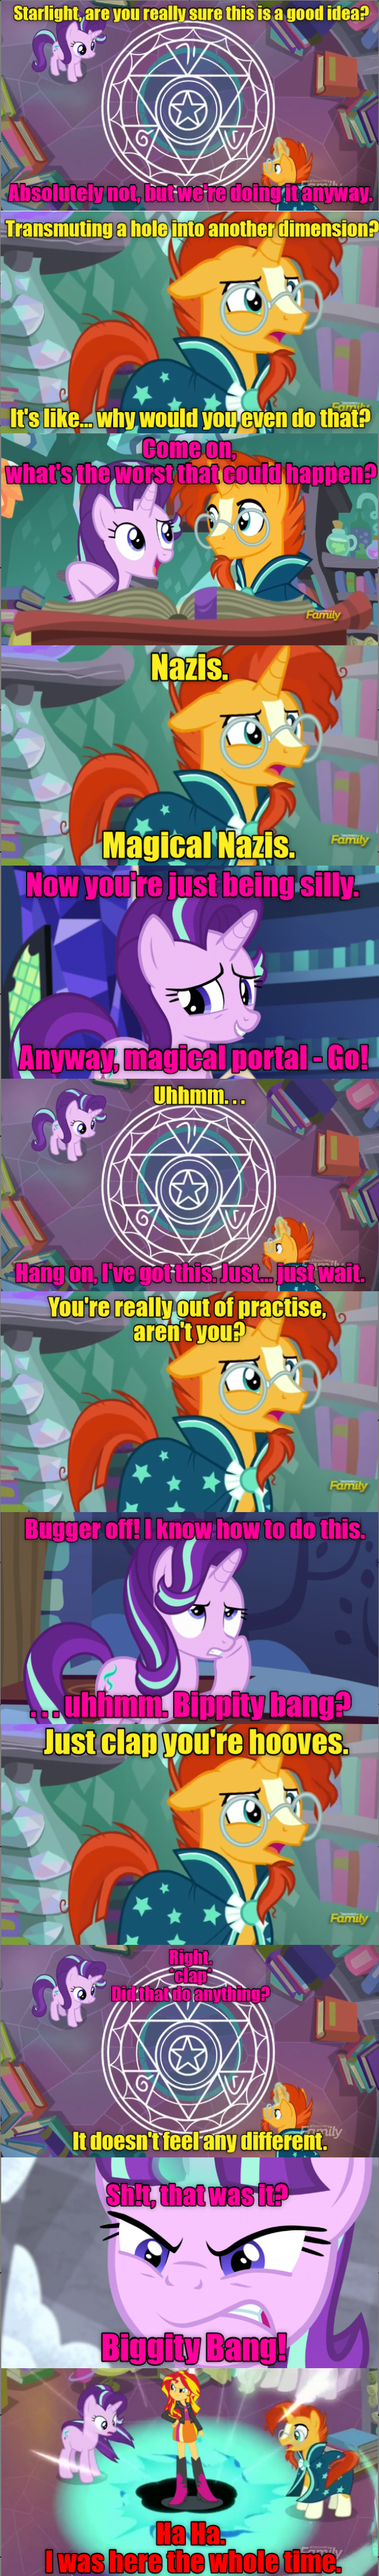 celestial advice equestria girls sunburst starlight glimmer screencap comic sunset shimmer - 9035316224